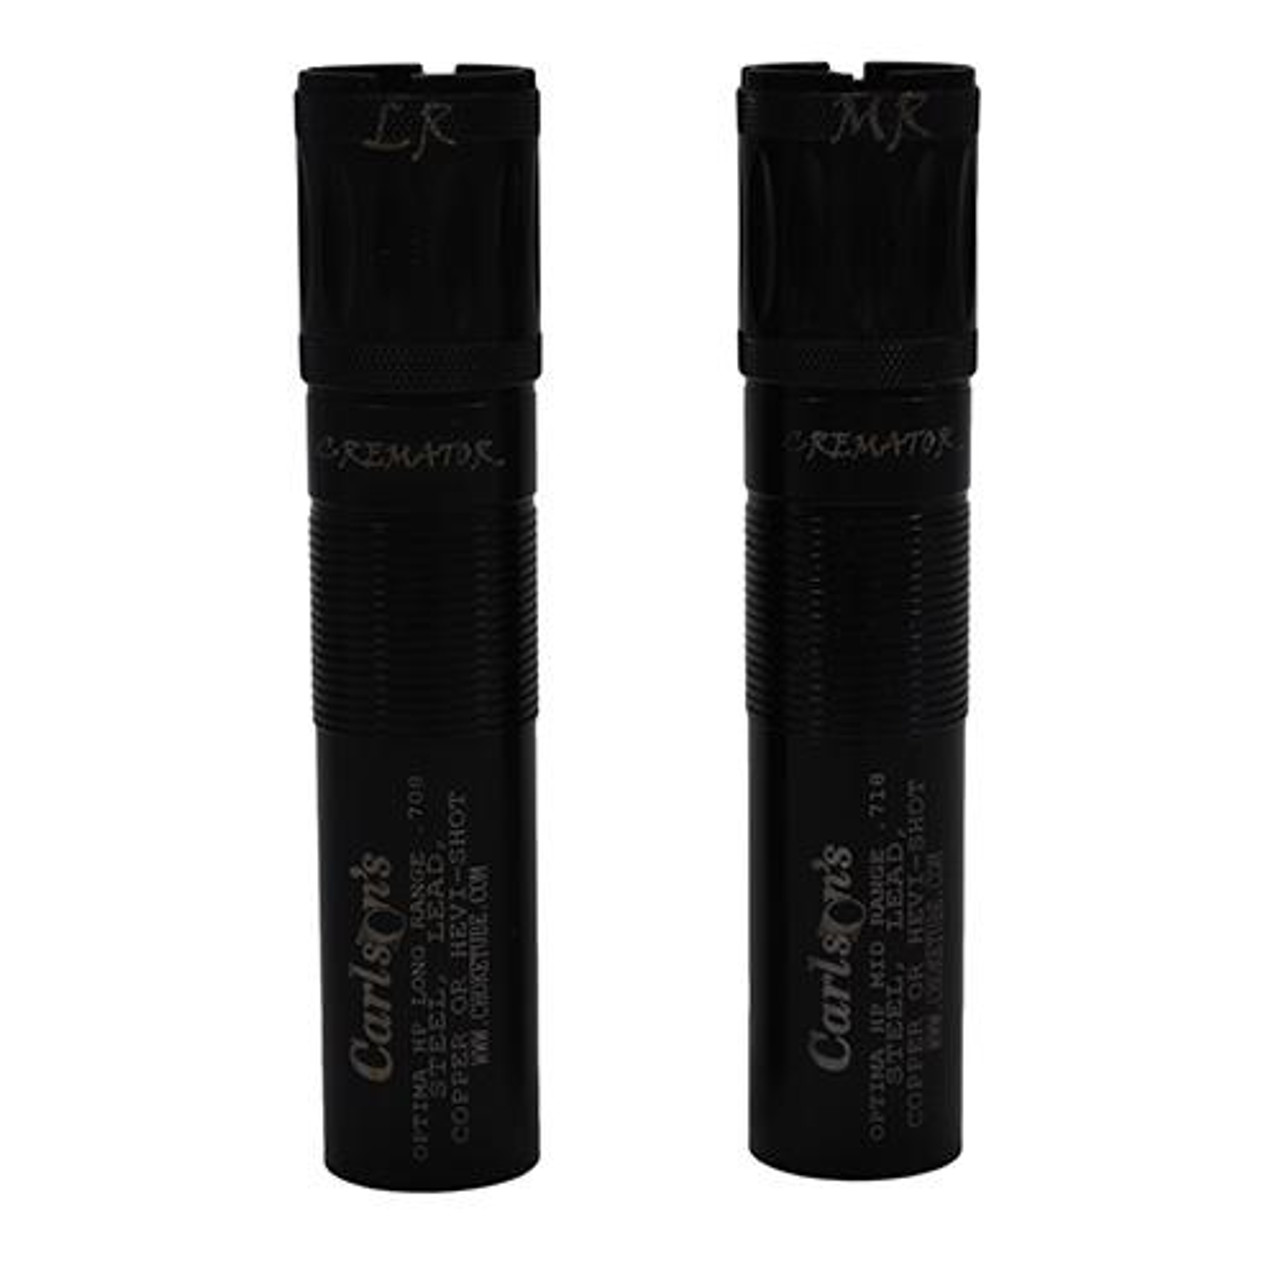 Carlsons Beretta Optima HP 12 Gauge Cremator Non-Ported Choke Tube Mid  Range,  718 Diameter and Long Range,  708 Diameter